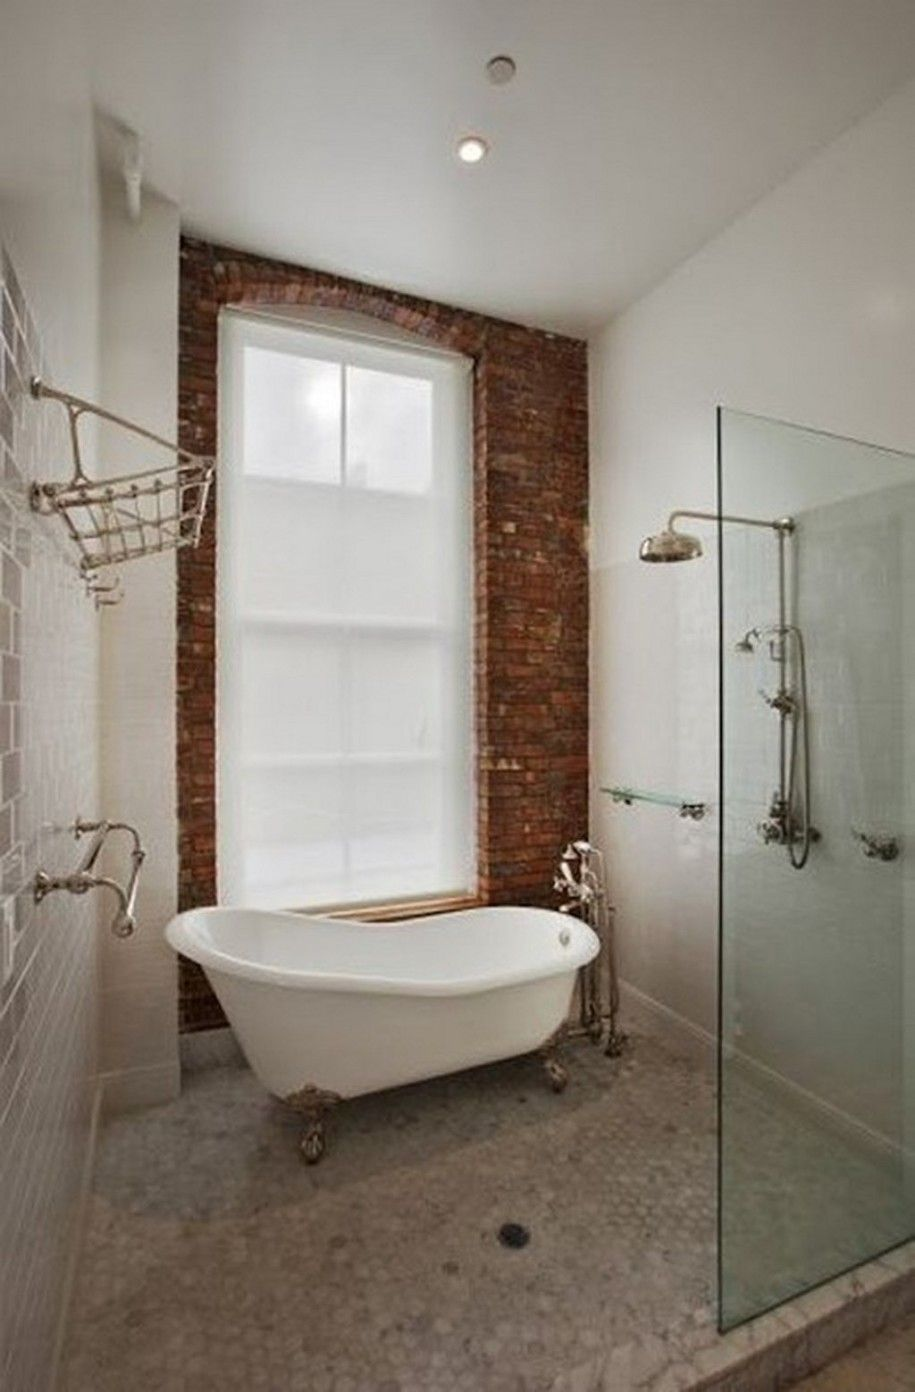 Love How Much An Interior Brick Wall Adds To The Bathroom Get The Look With Our Waterproof Easy To Inst Bathroom Design Trends Bathroom Trends Bathroom Design